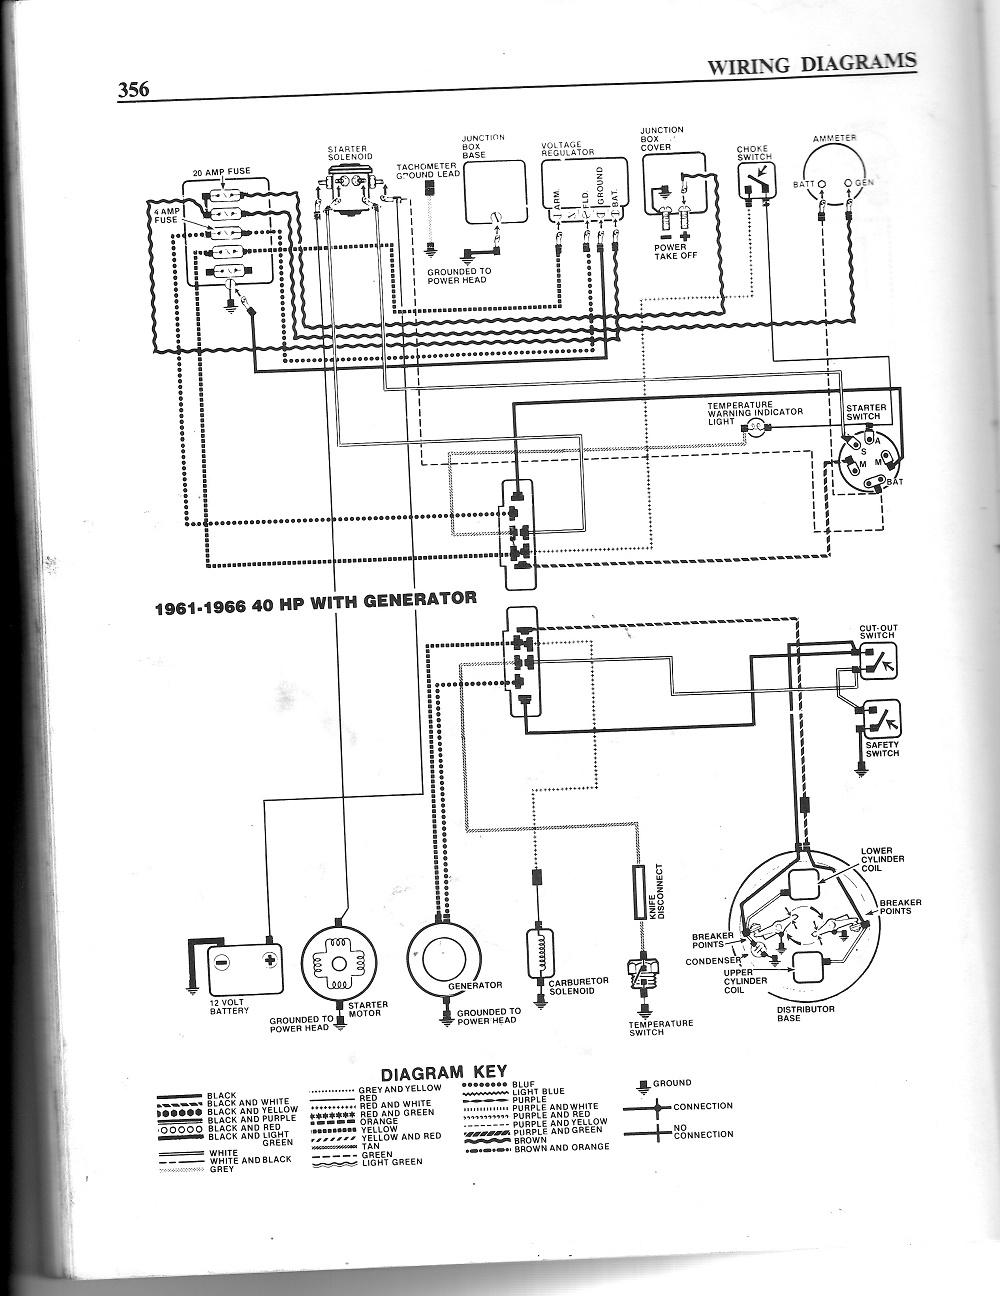 [DIAGRAM] 1976 50 Hp Mercury Wiring Diagram FULL Version